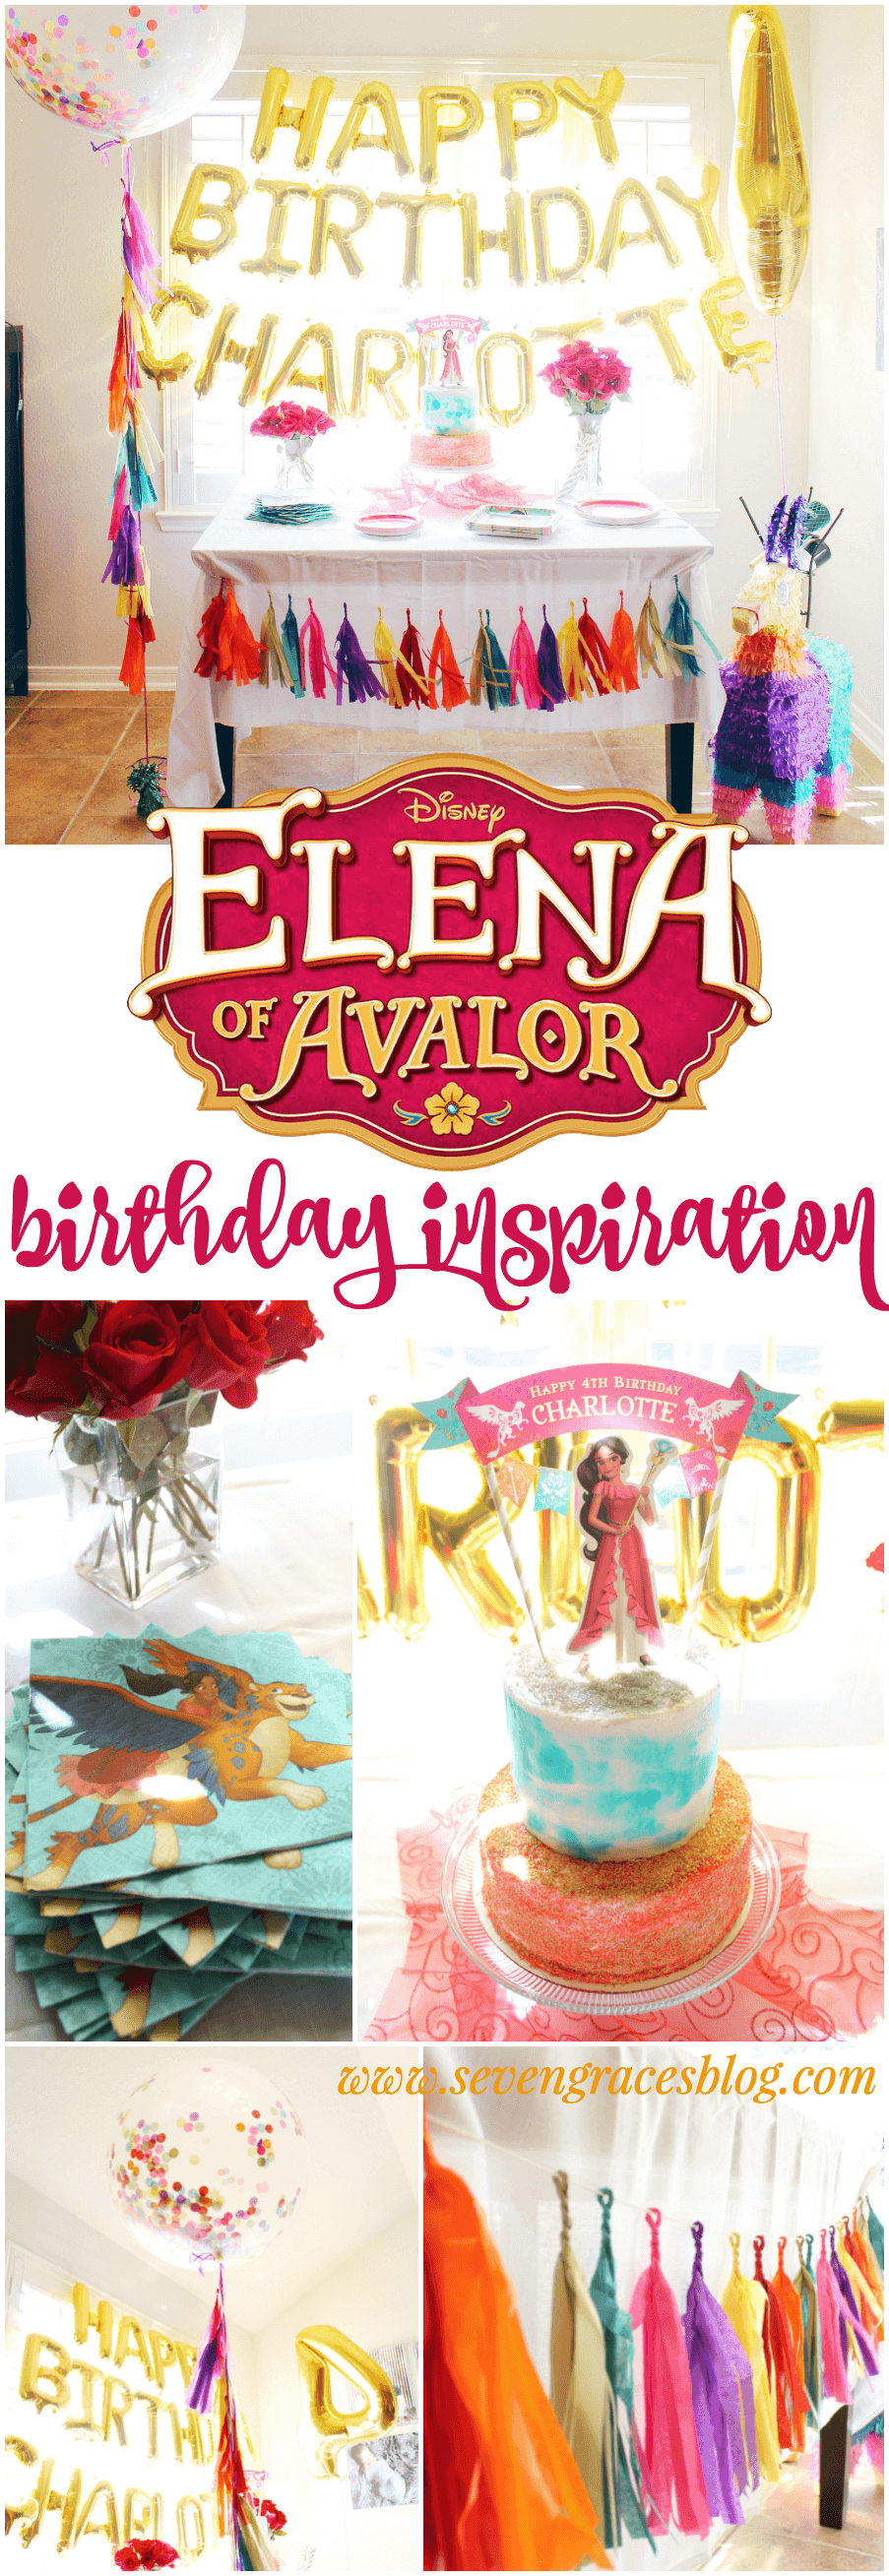 Elena of Avalor birthday party decor and inspiration. The cutest themed fiesta inspiration.